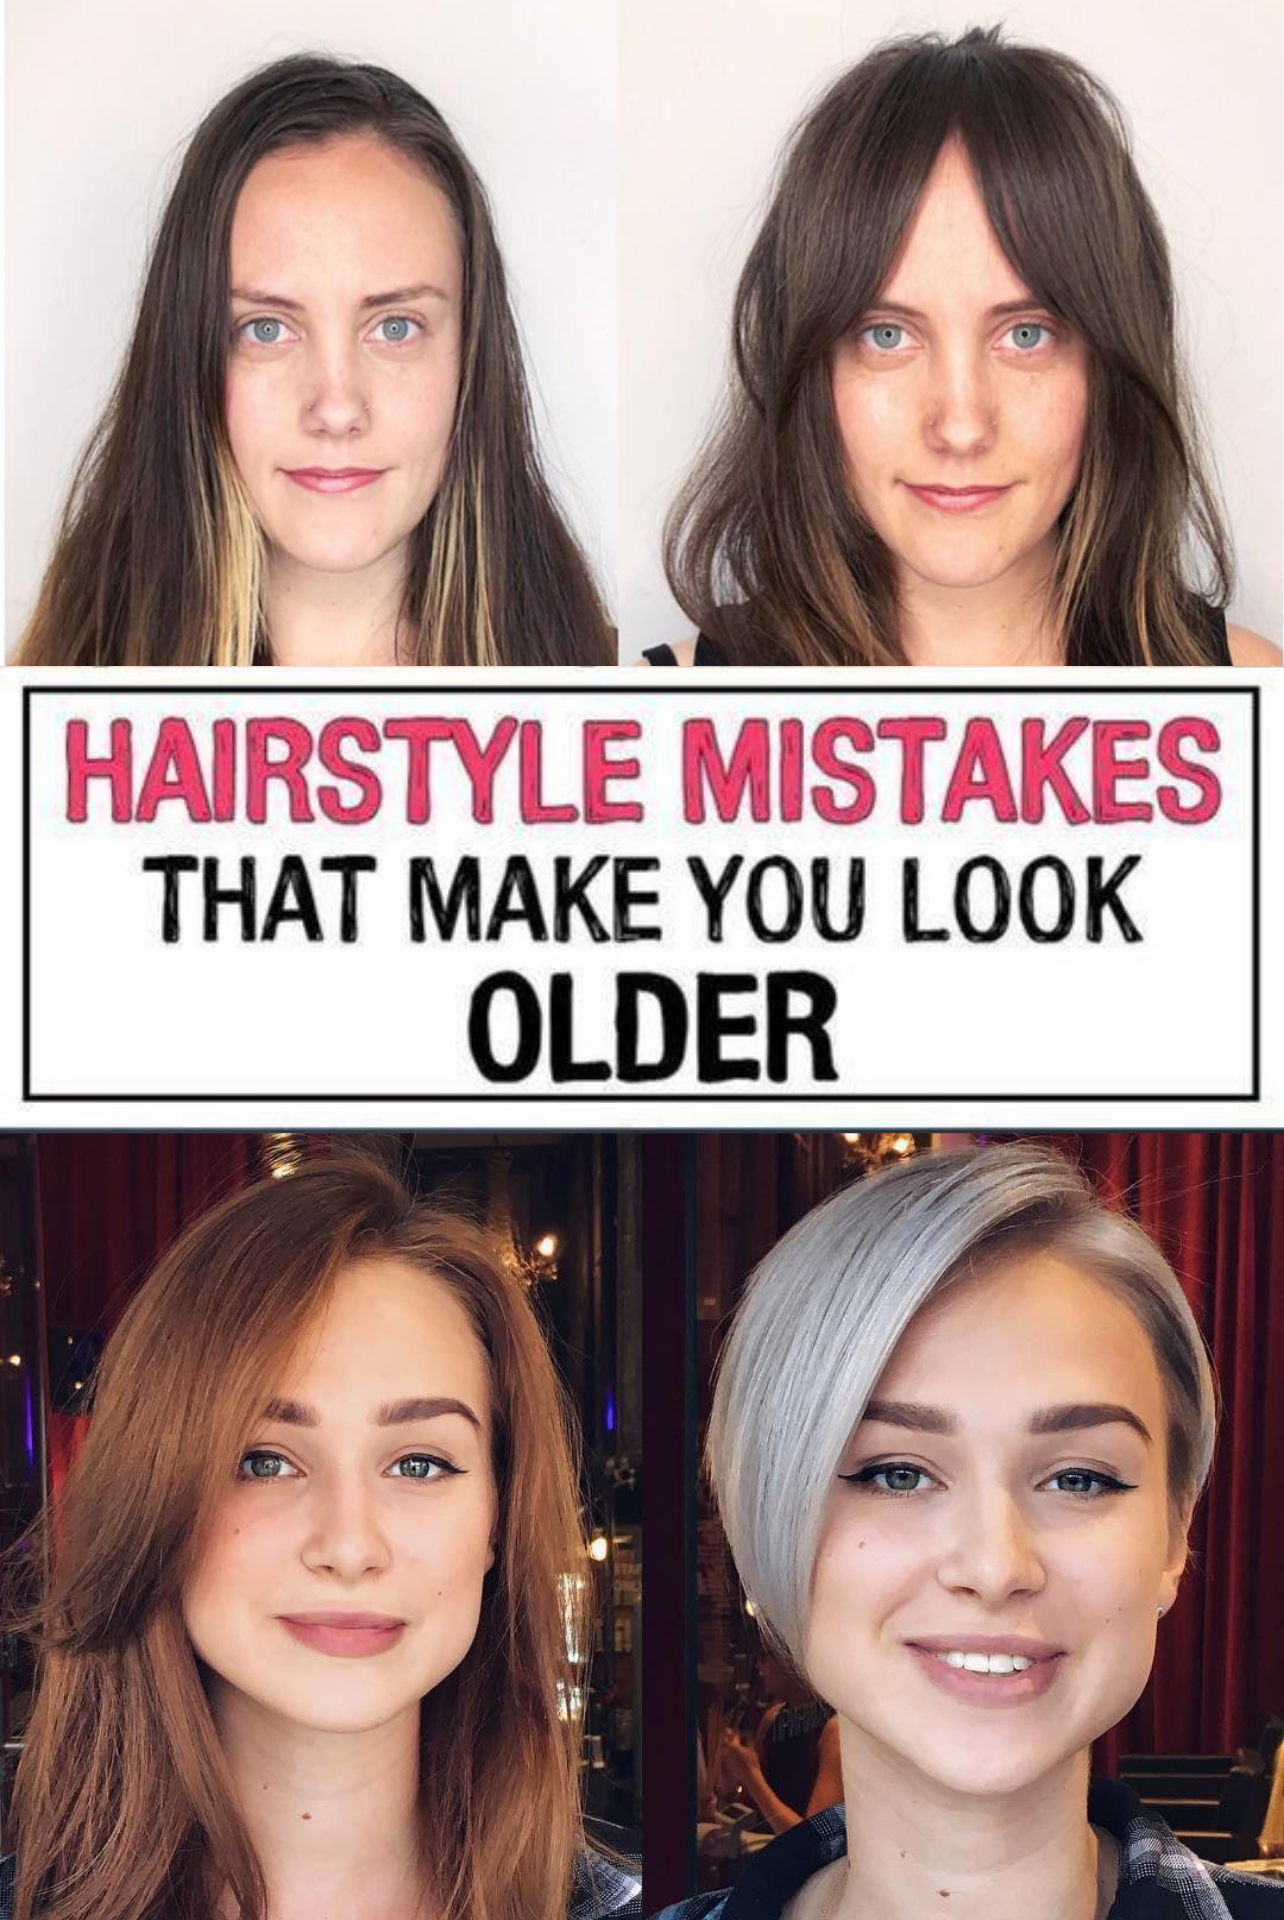 11 Hairstyle Mistakes That Are Aging You In 2020 Hair Mistakes Hairstyle Natural Beauty Tips